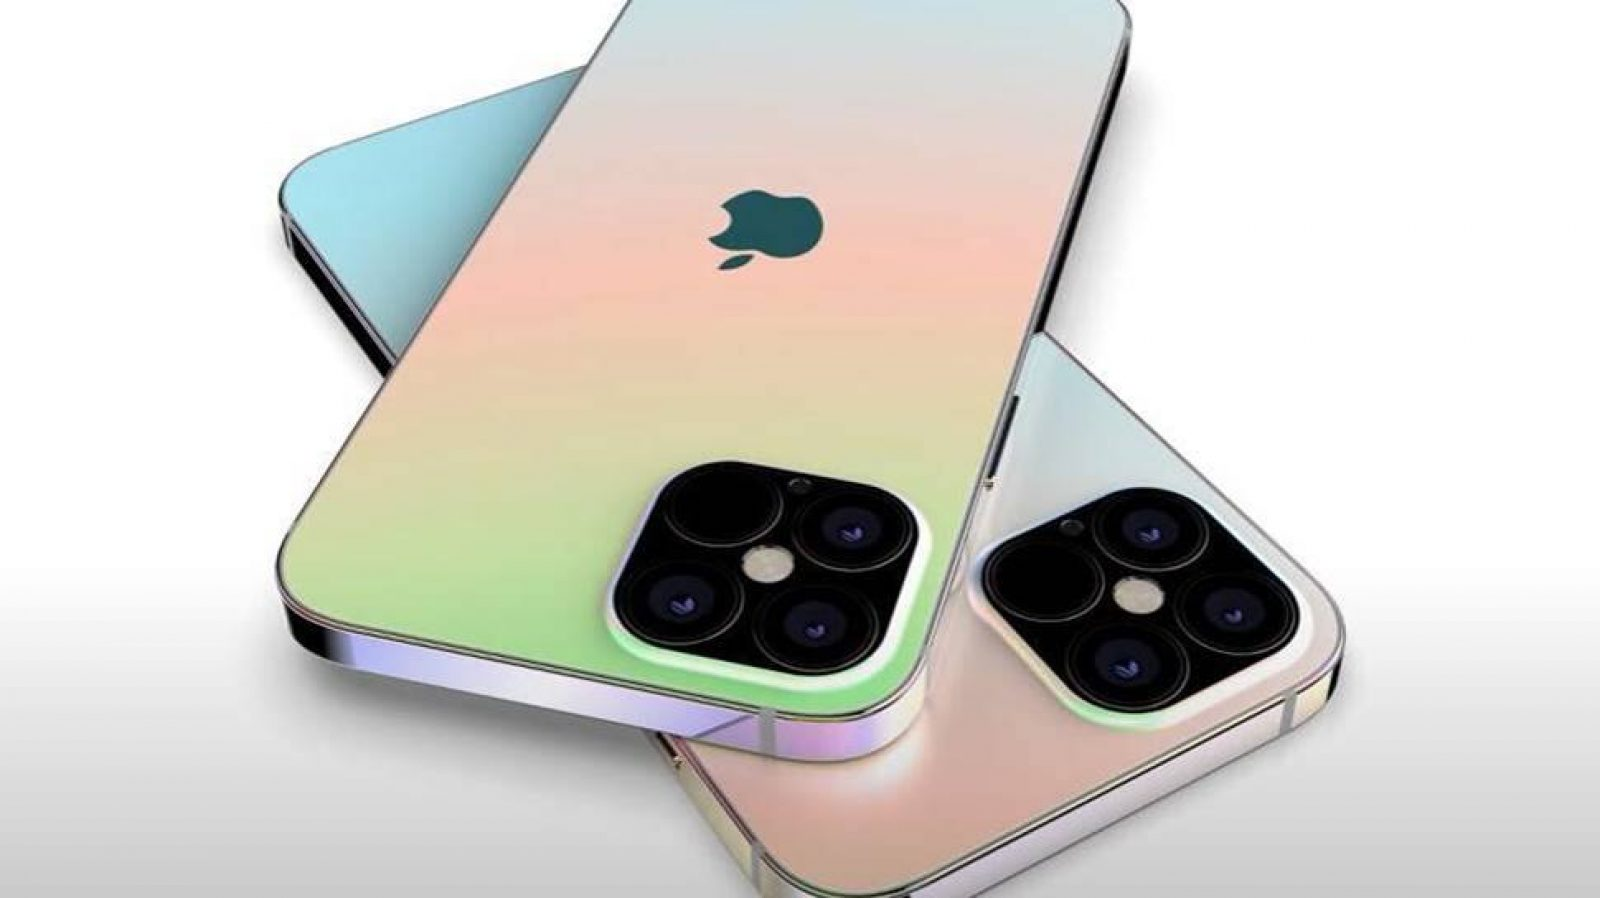 Apple iPhone 13 series likely to get massive camera upgrades - check details